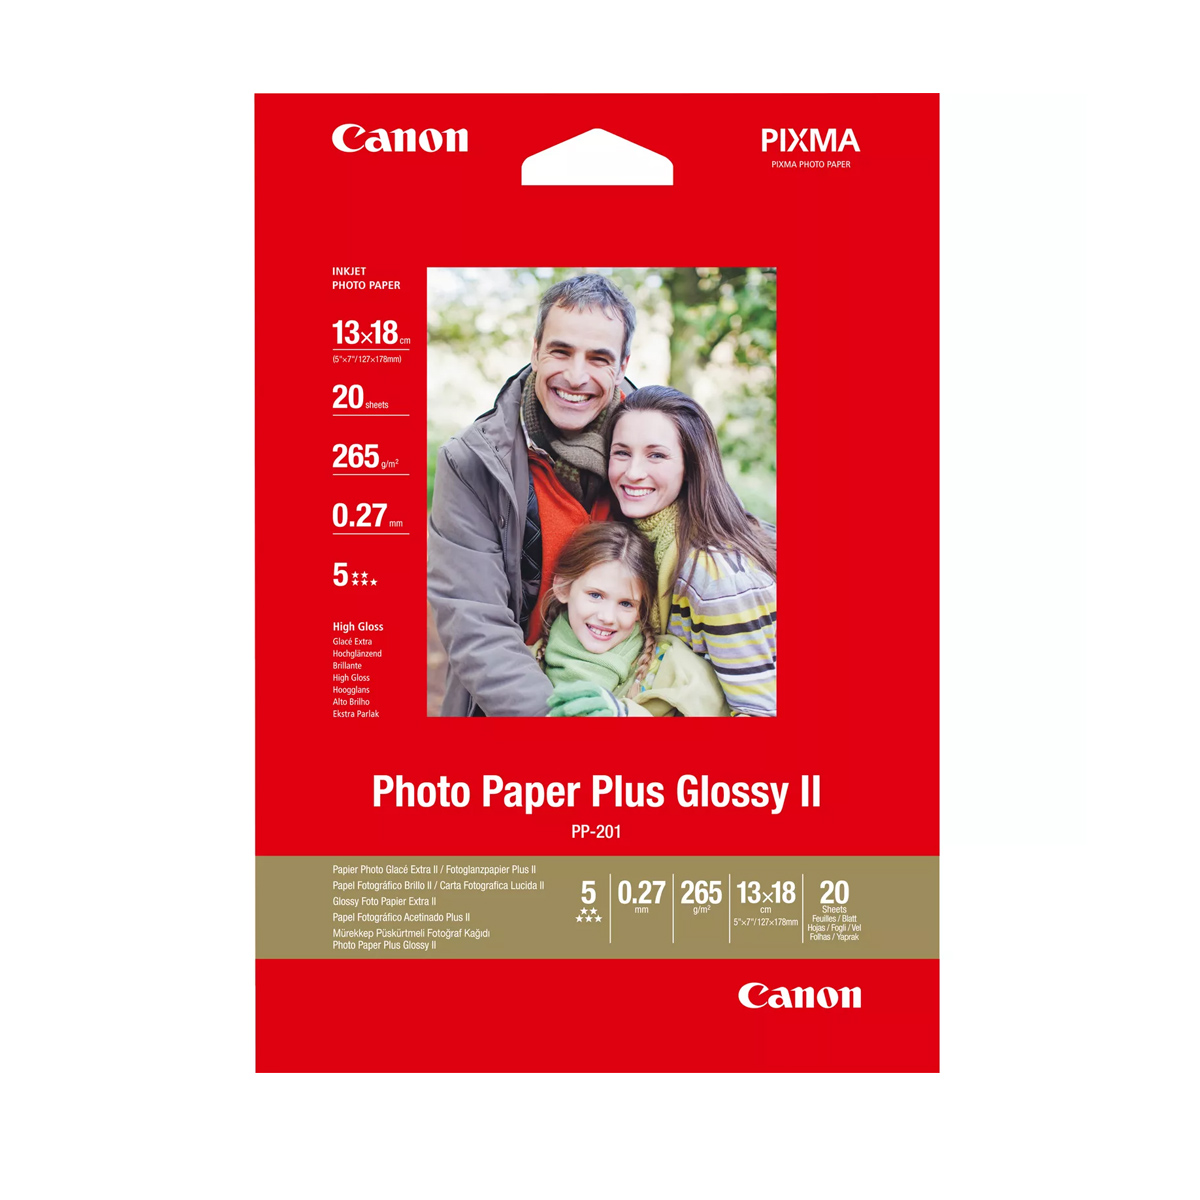 Paper Canon PP-201 Glossy II Photo Paper Plus  5x7